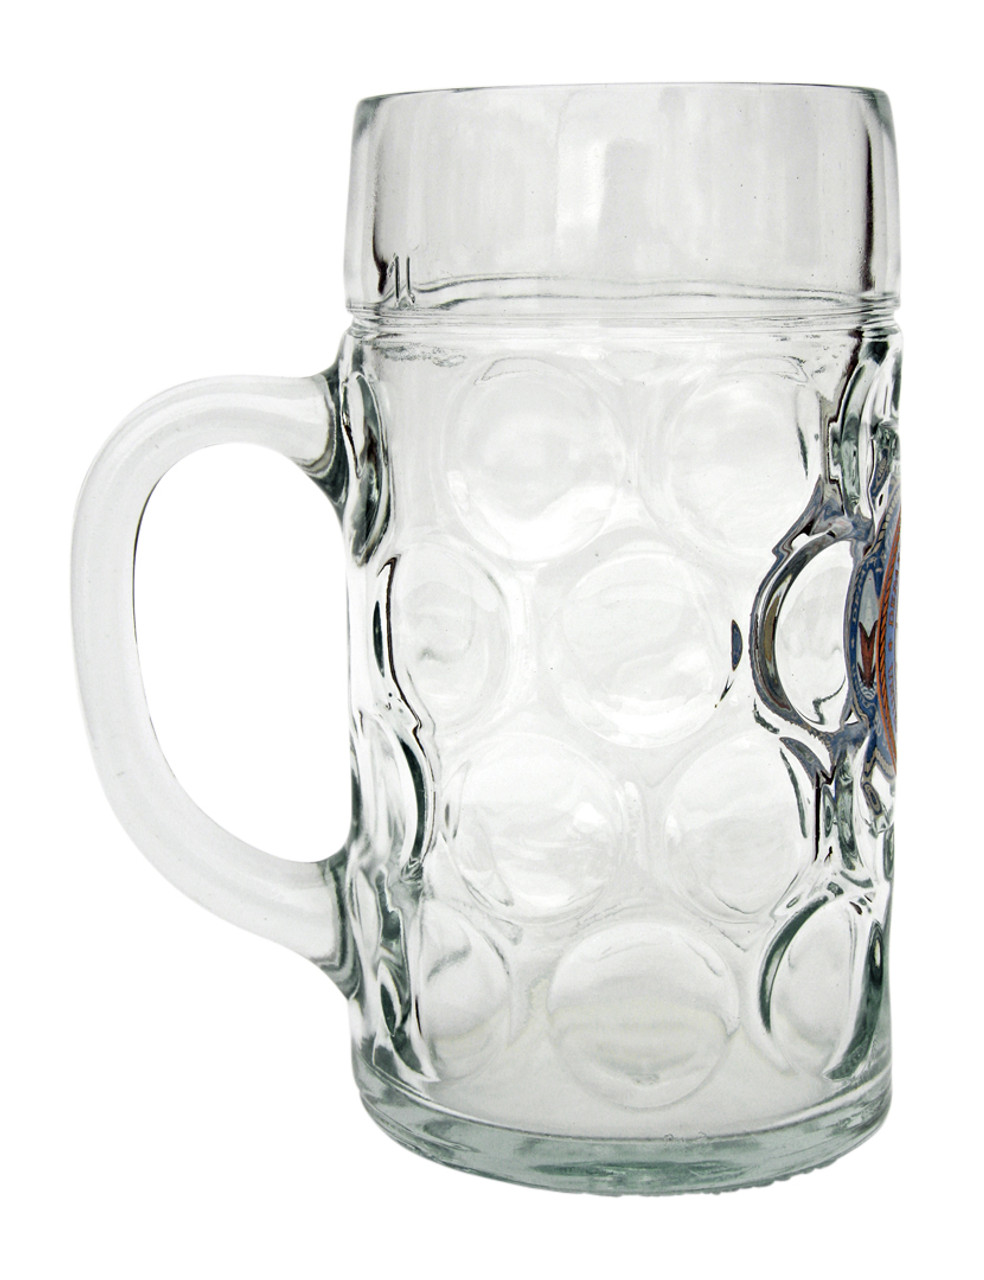 Side of 1 Liter US Navy Beer Mug